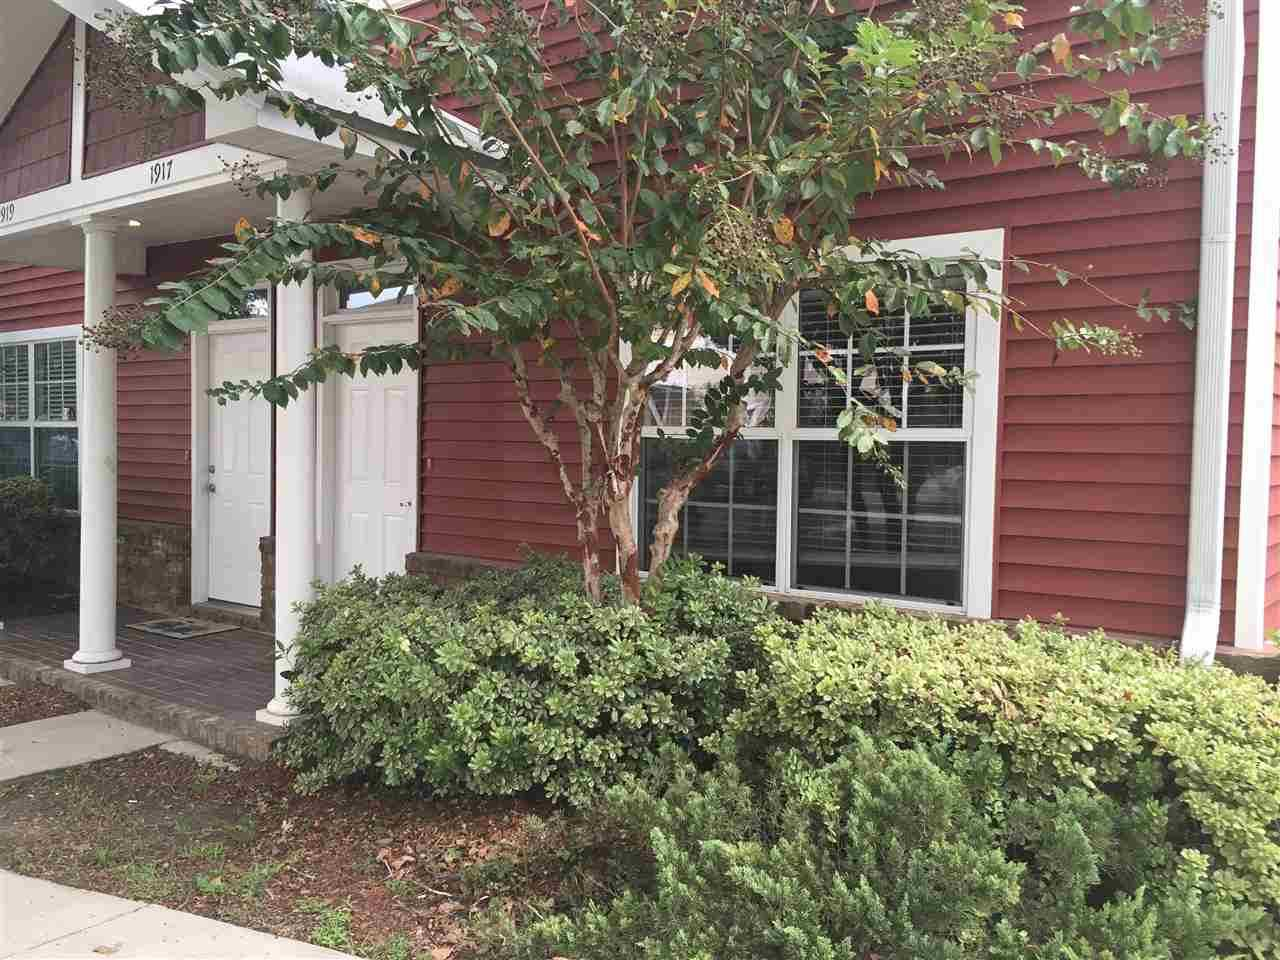 1917 Corvallis Avenue Tallahassee, FL 32303 in University Greens Condominiums Photo 1